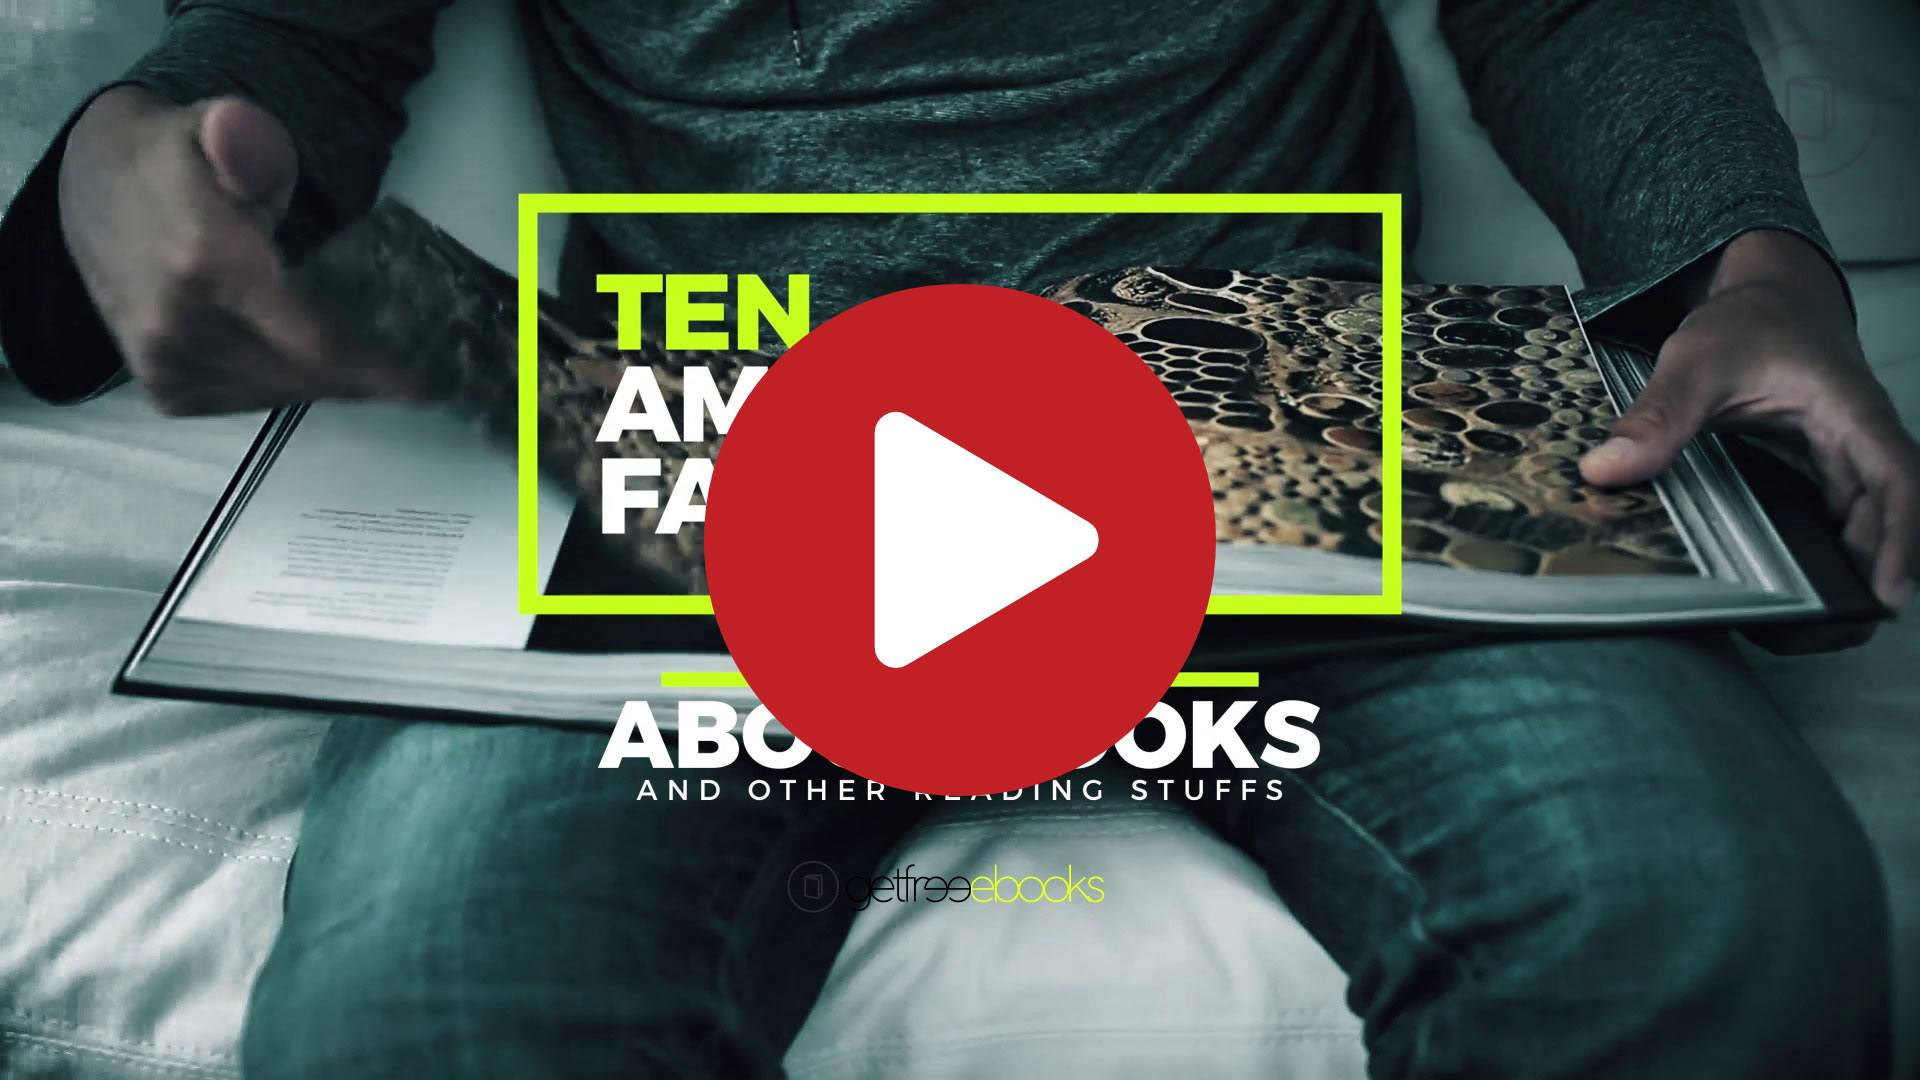 10 Amazing Facts About Books - Part 1